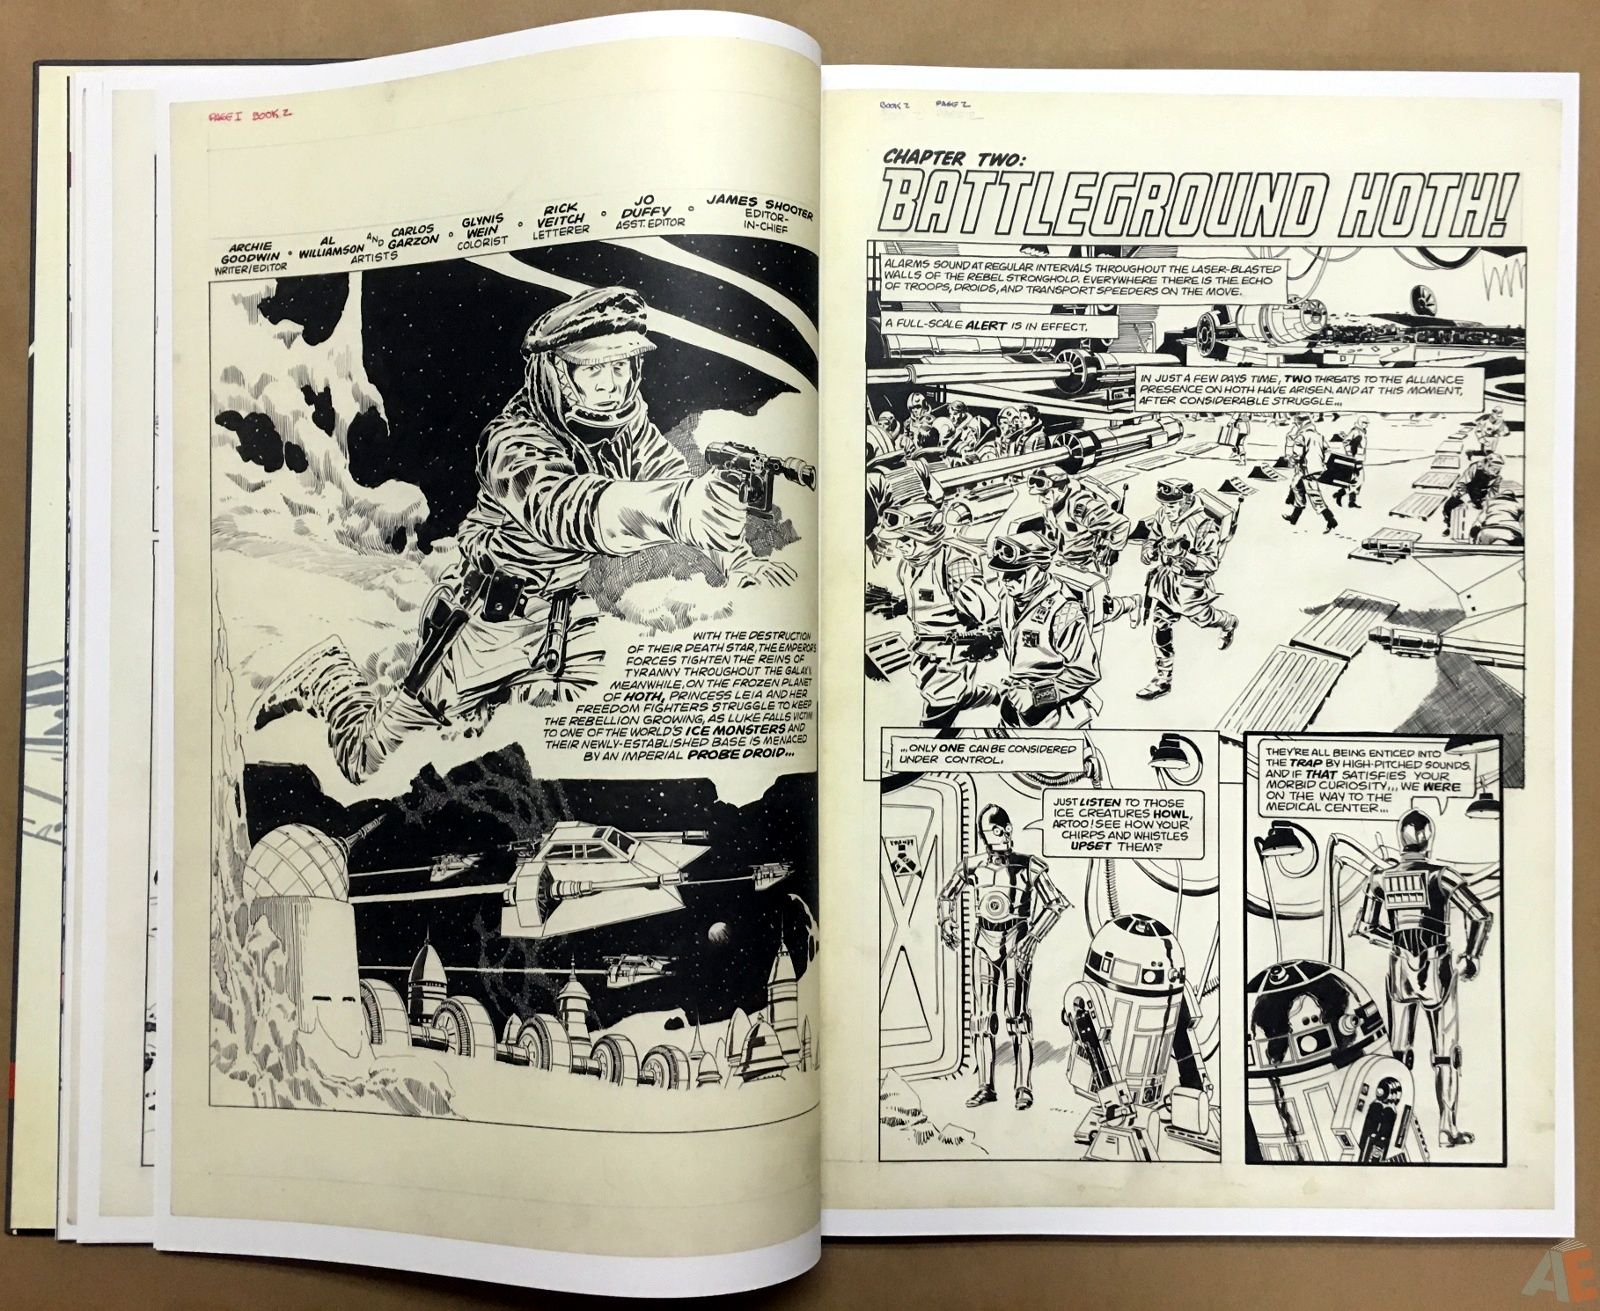 Al Williamson's Star Wars: The Empire Strikes Back Artist's Edition 12